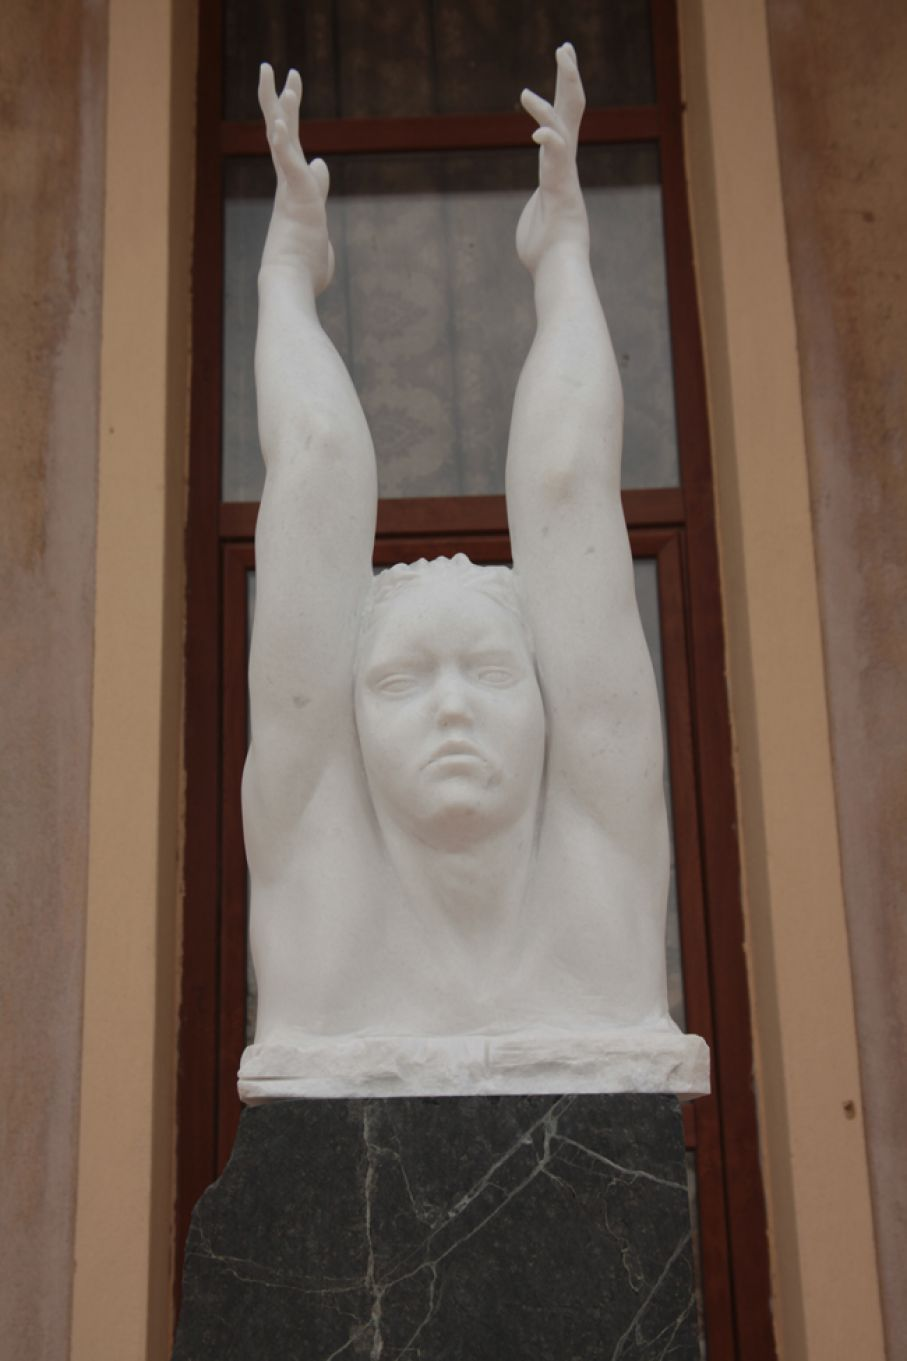 "Original marble sculpture of Stratos Pallas, completed on August 2013, within Myrό Antiques House premises, in Souroti, Thessaloniki, GREECE, as part of the Greek Marble Initiative, bearign the title ""Metamorphosis"". Dimensions: 88 X 33 X 27 cm (without its base)."